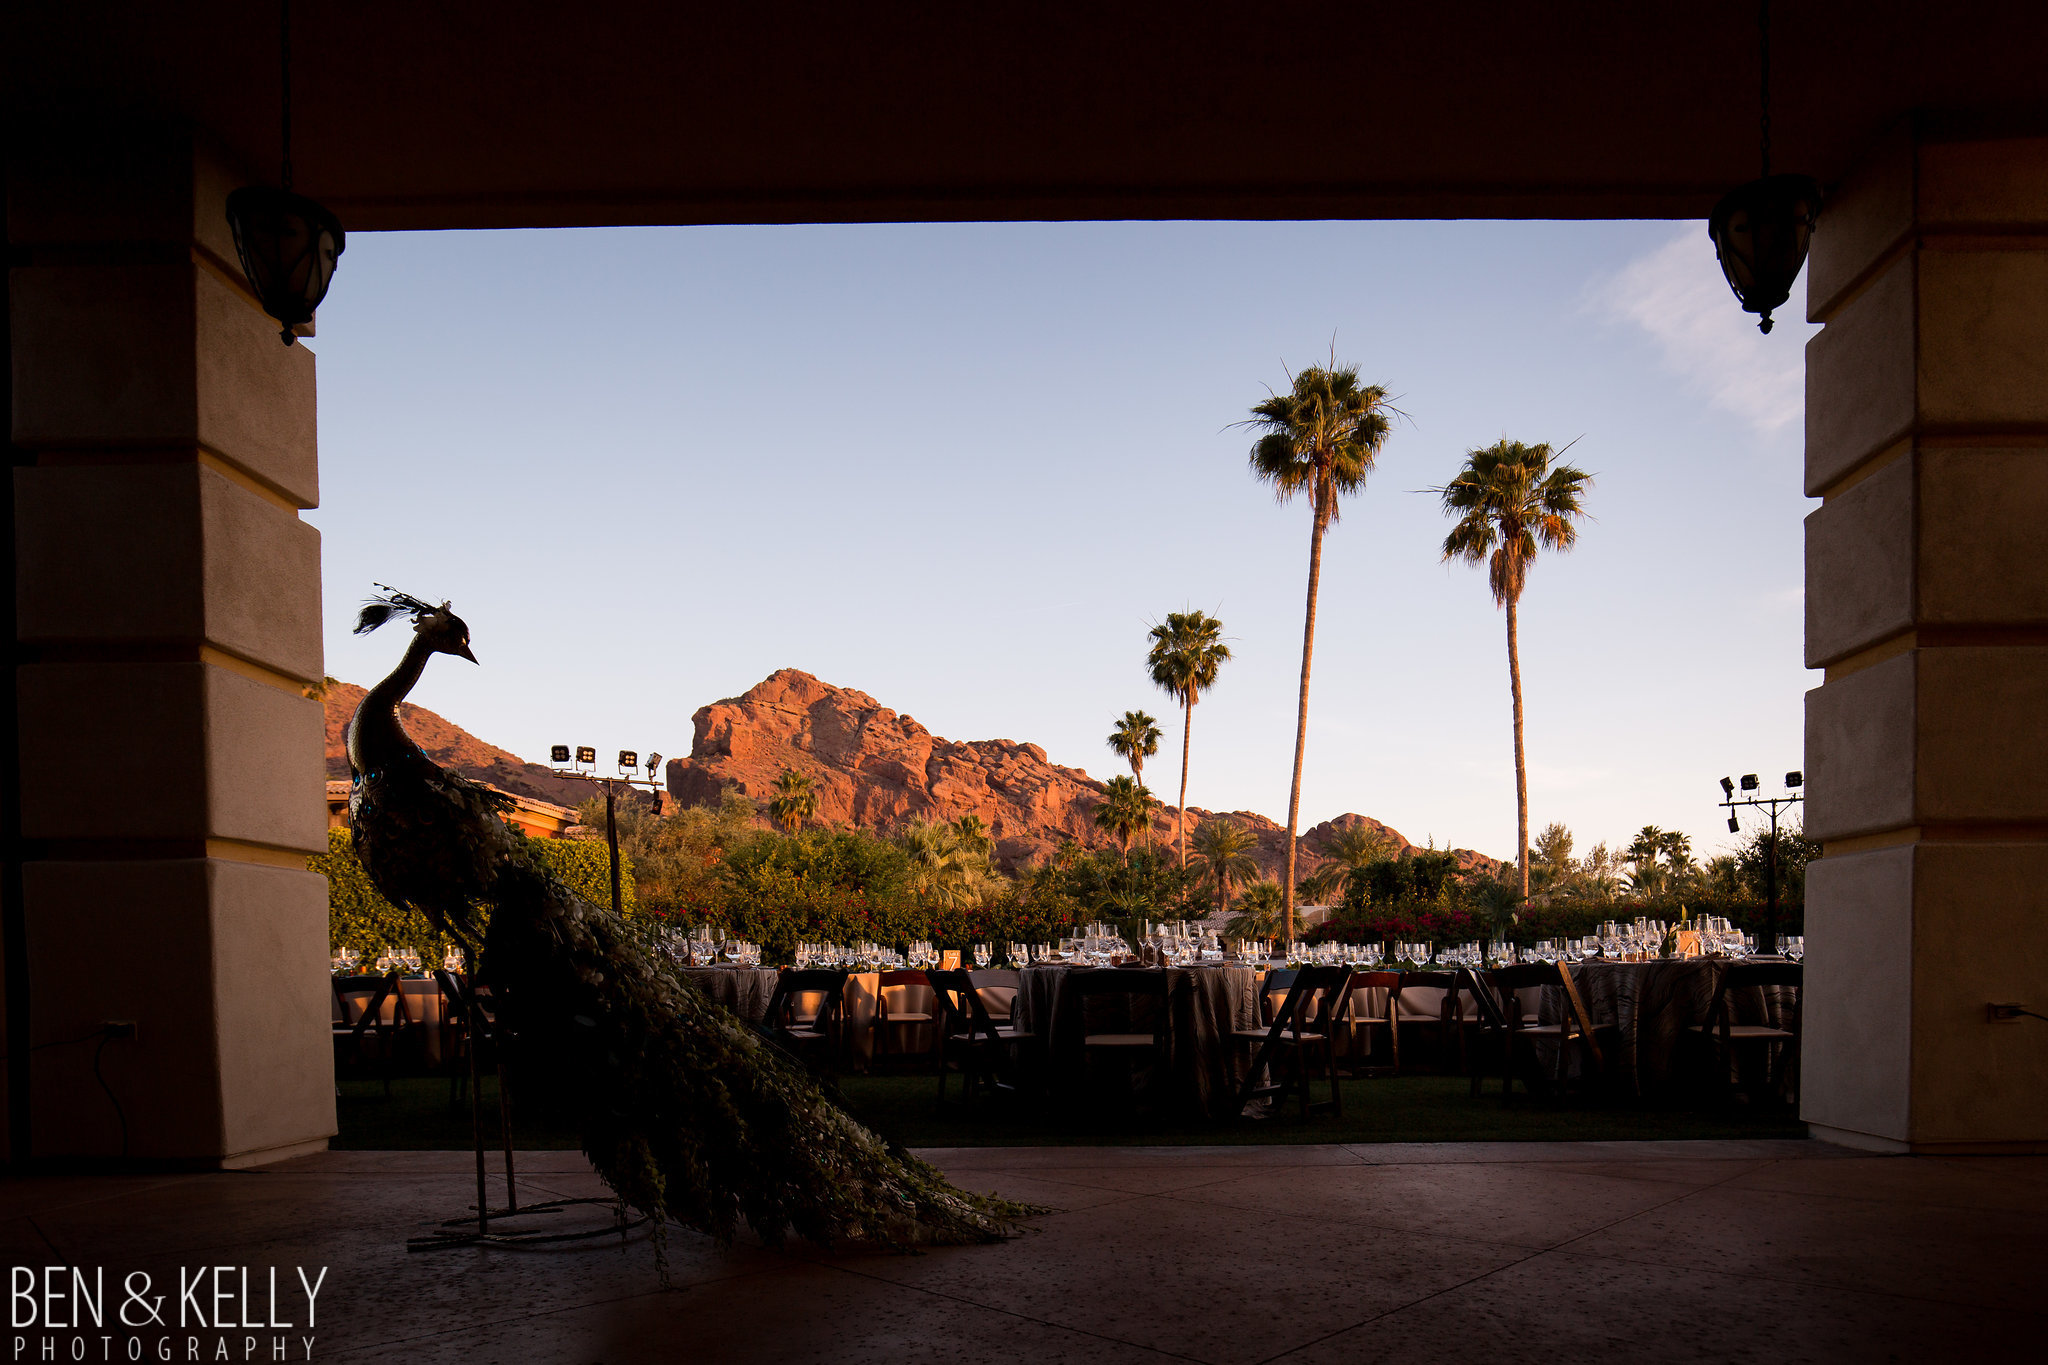 26 wedding reception outdoor wedding reception with a view peacock guest welcome omni scottsdale montelucia wedding sunset wedding reception Life Design Events photo by Ben and Kelly Photography.jpg